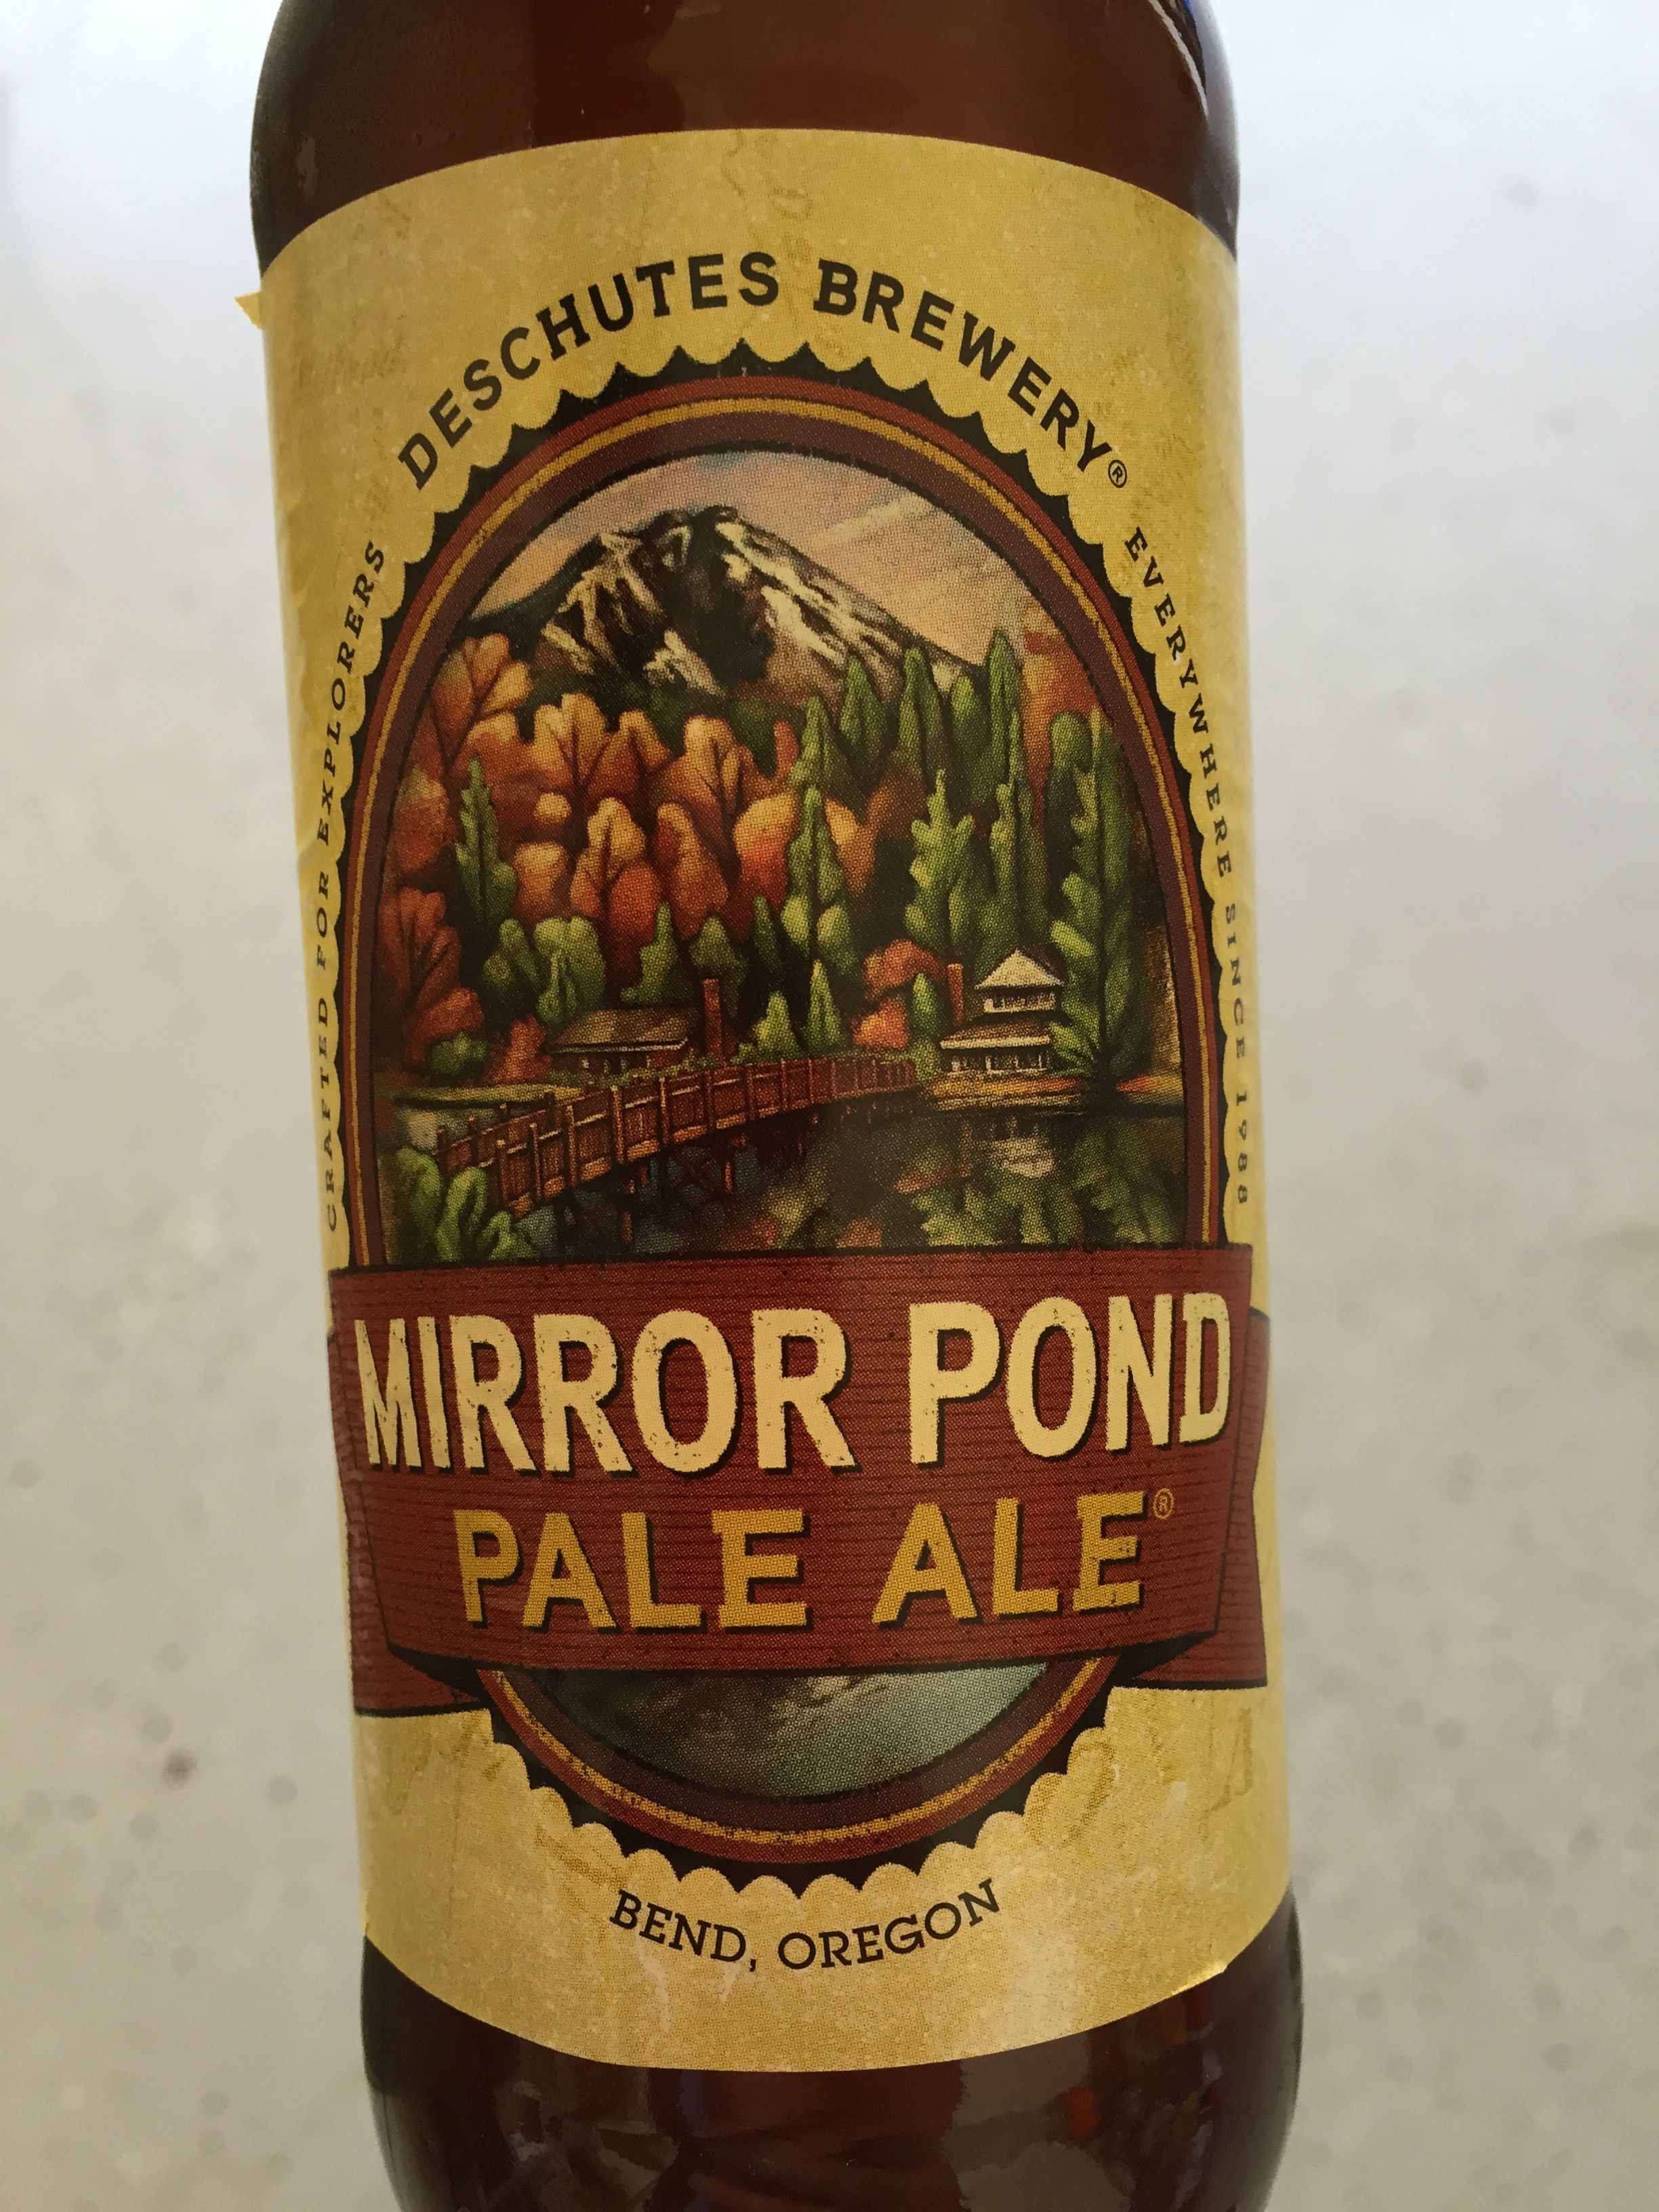 Mirror Pond Pale Ale. Very good, not rich, dry, flavorsome.